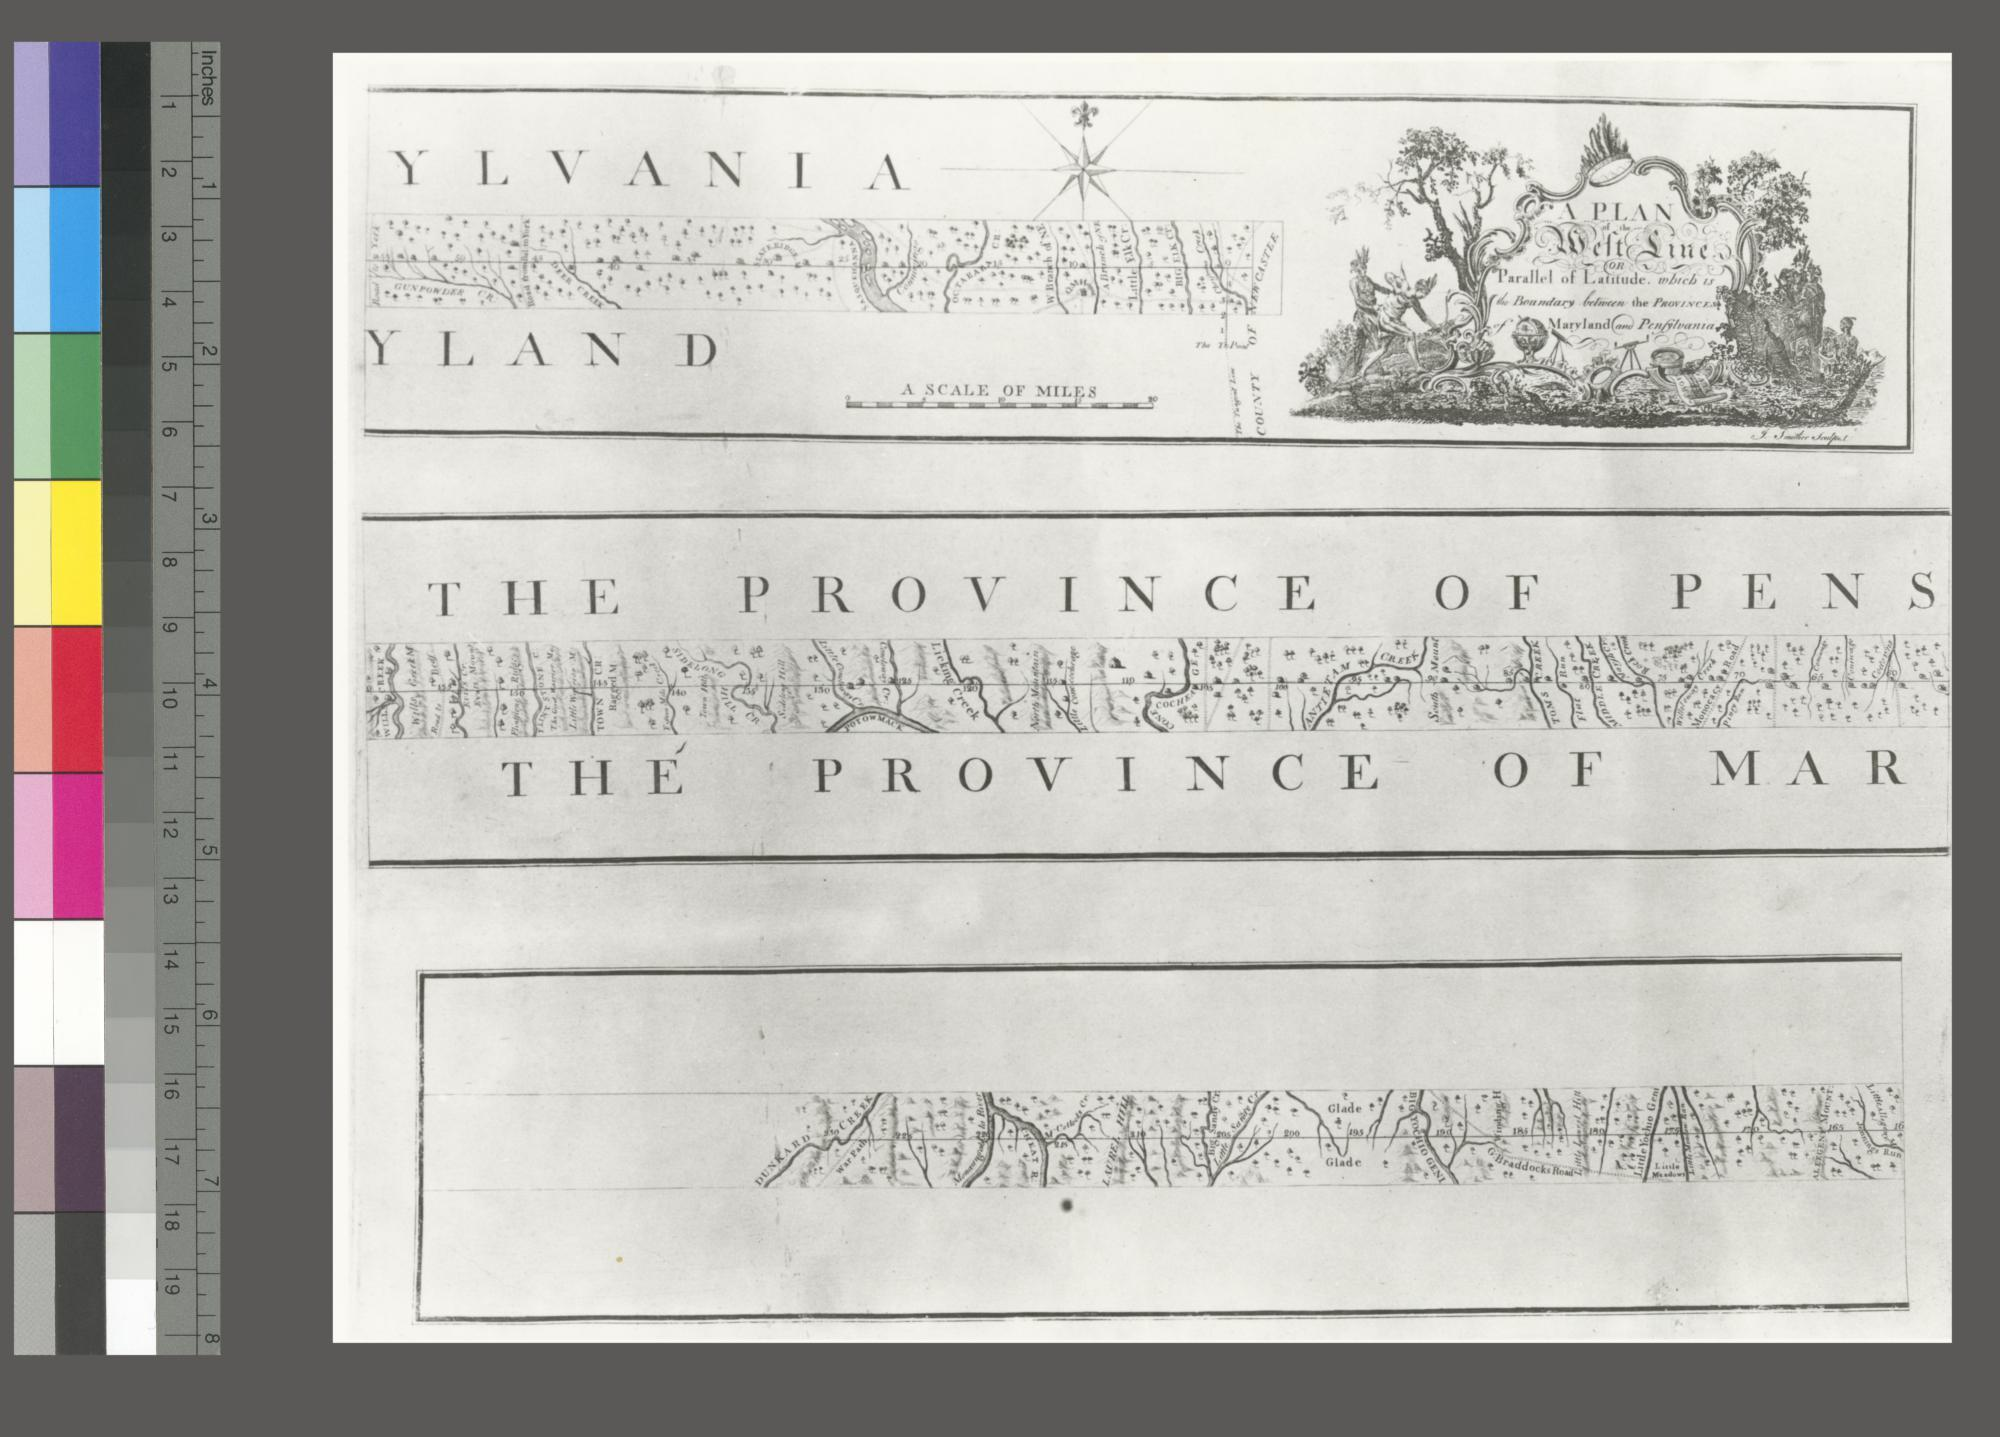 Plan of the boundary lines between the Province of Maryland and the three lower counties on the Delaware with part of the parallel of latitude which is the boundary between the provinces of Maryland and Pennsylvania